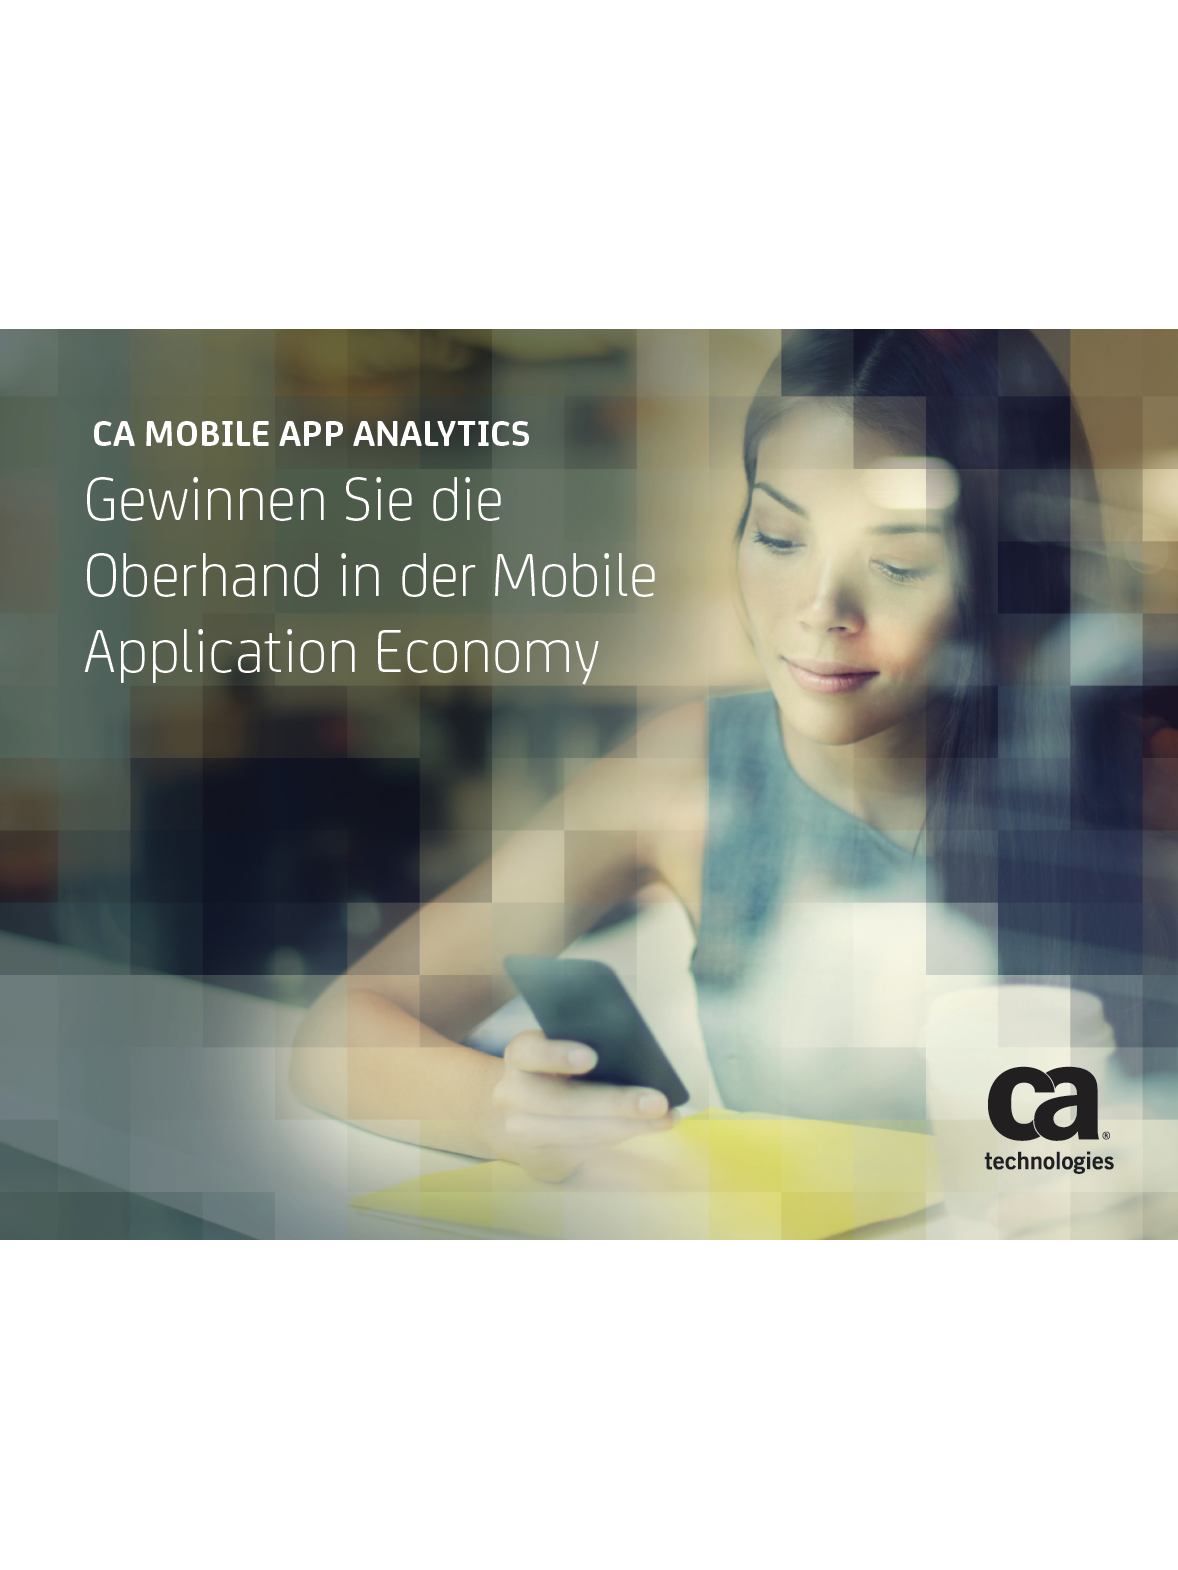 Gewinnen Sie die Oberhand in der Mobile Application Economy